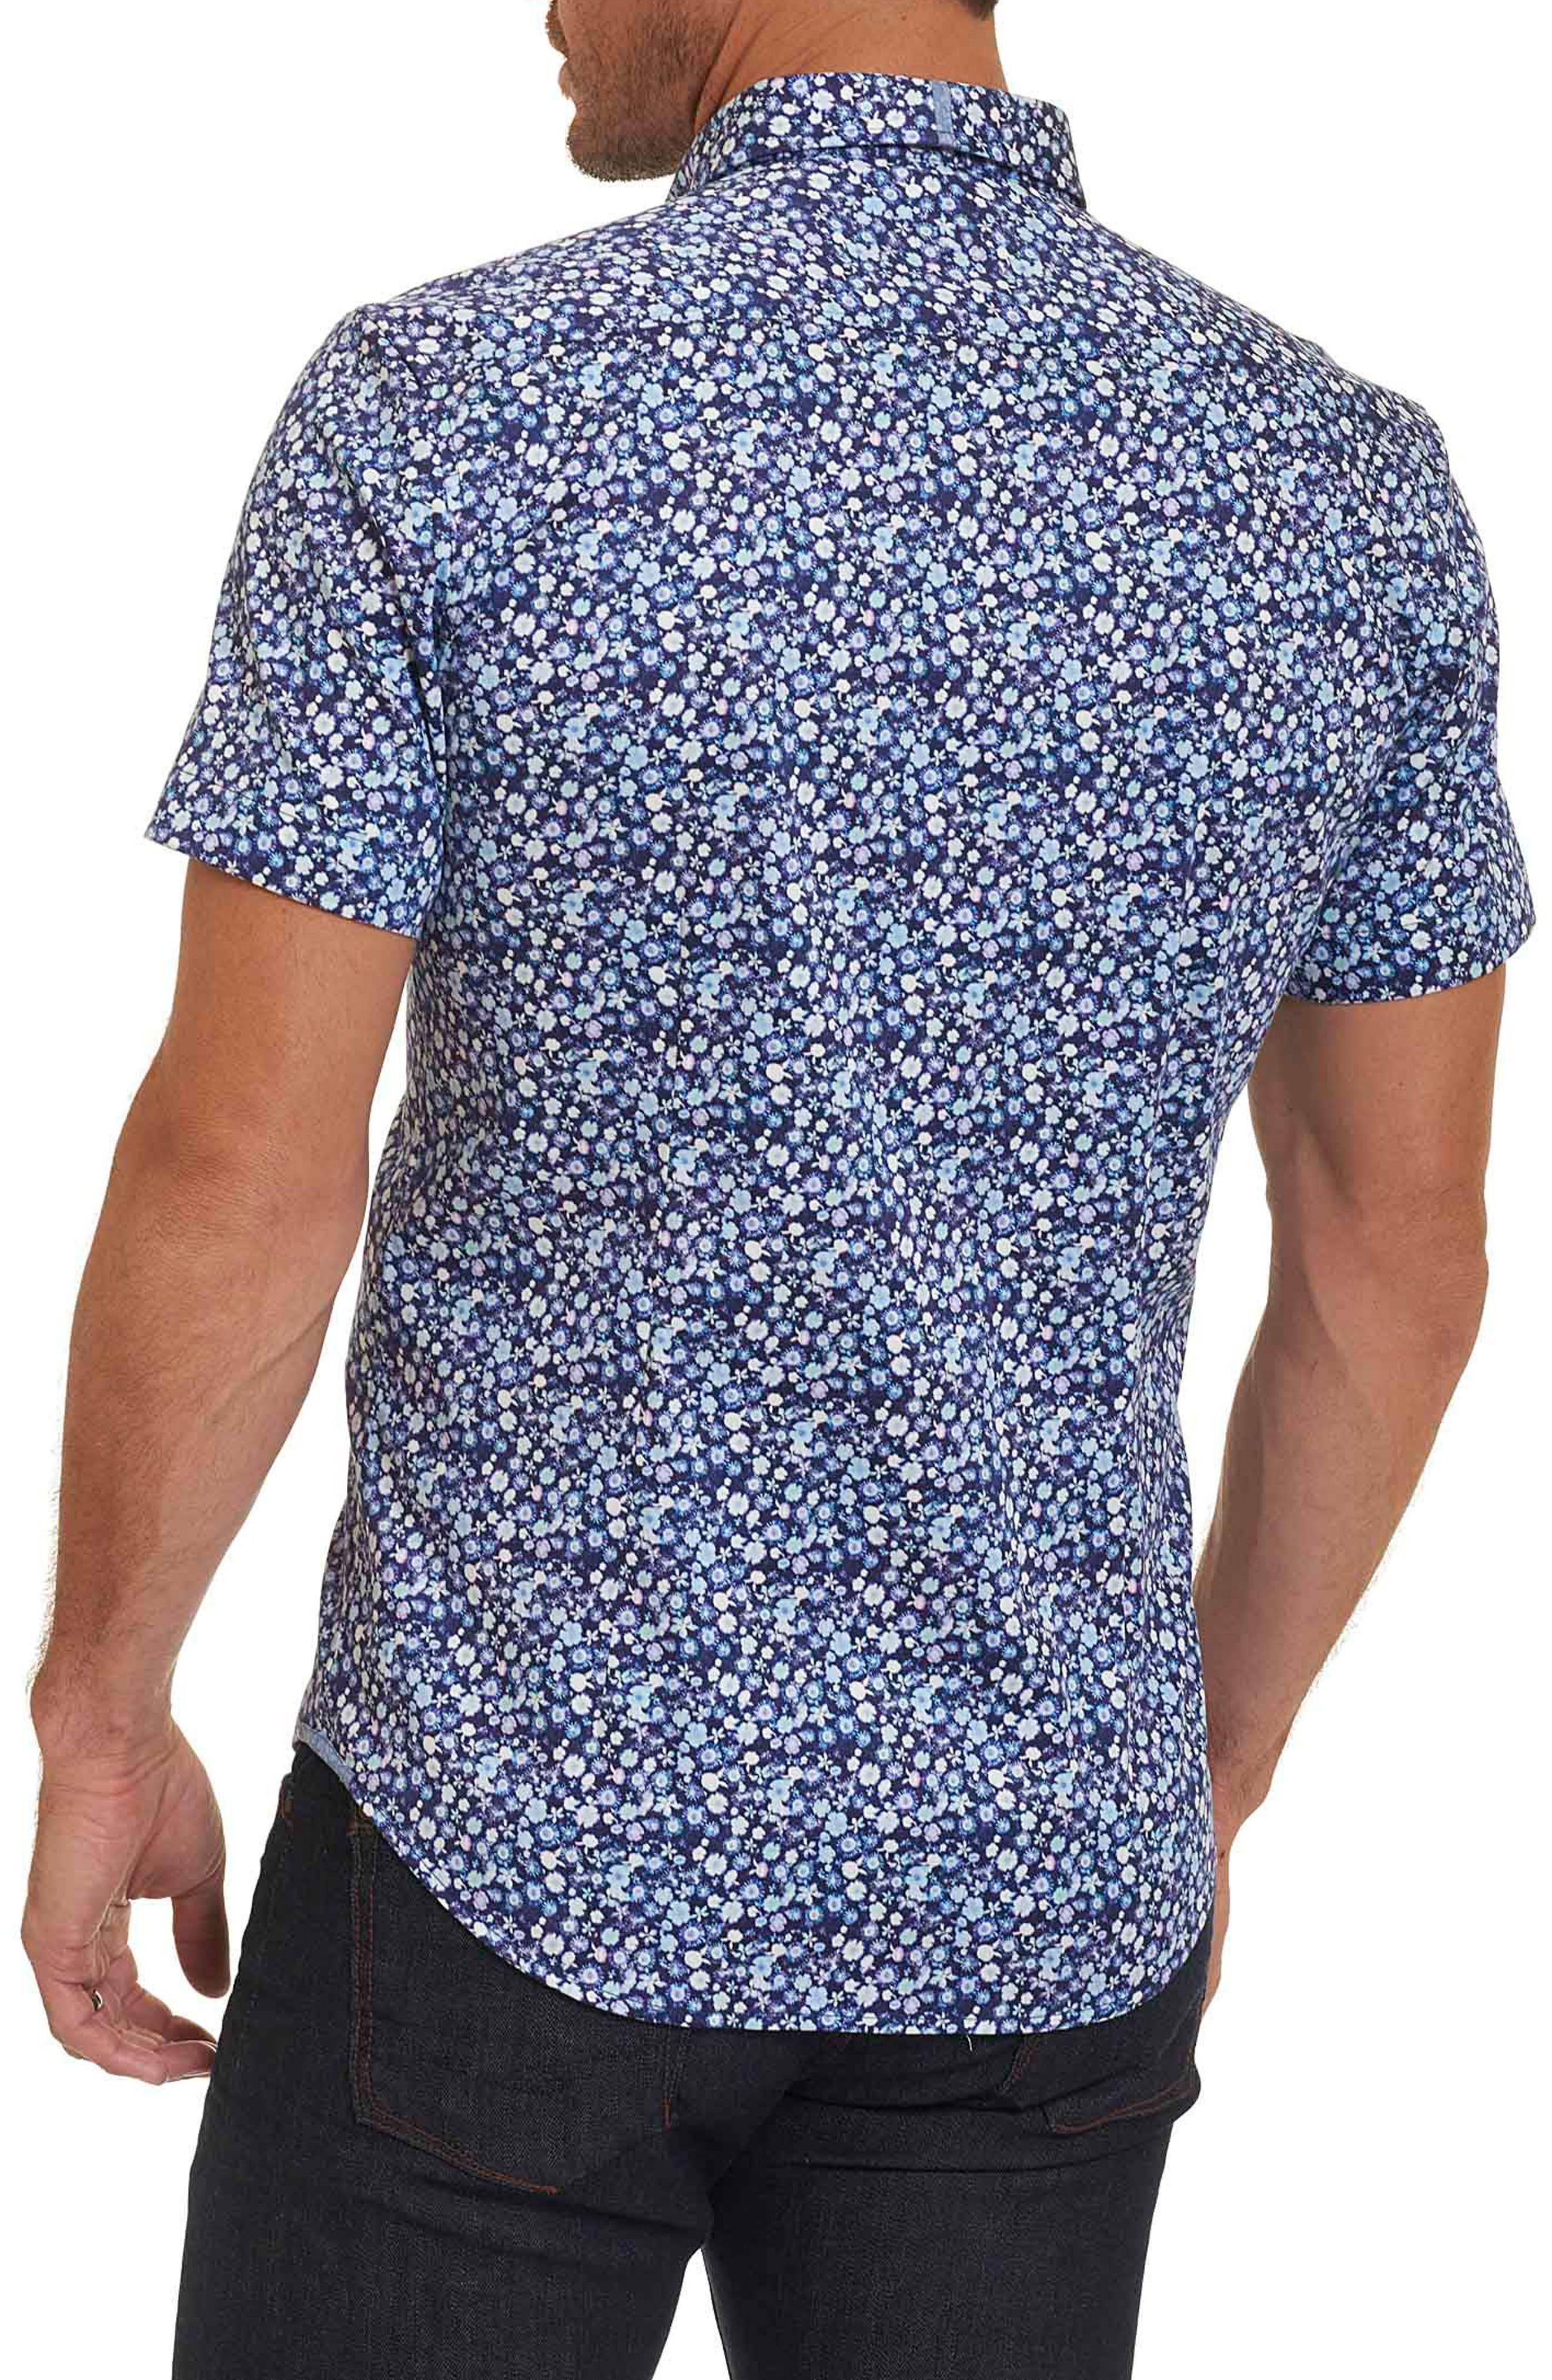 Bronson Tailored Fit Print Short Sleeve Sport Shirt,                             Alternate thumbnail 2, color,                             400